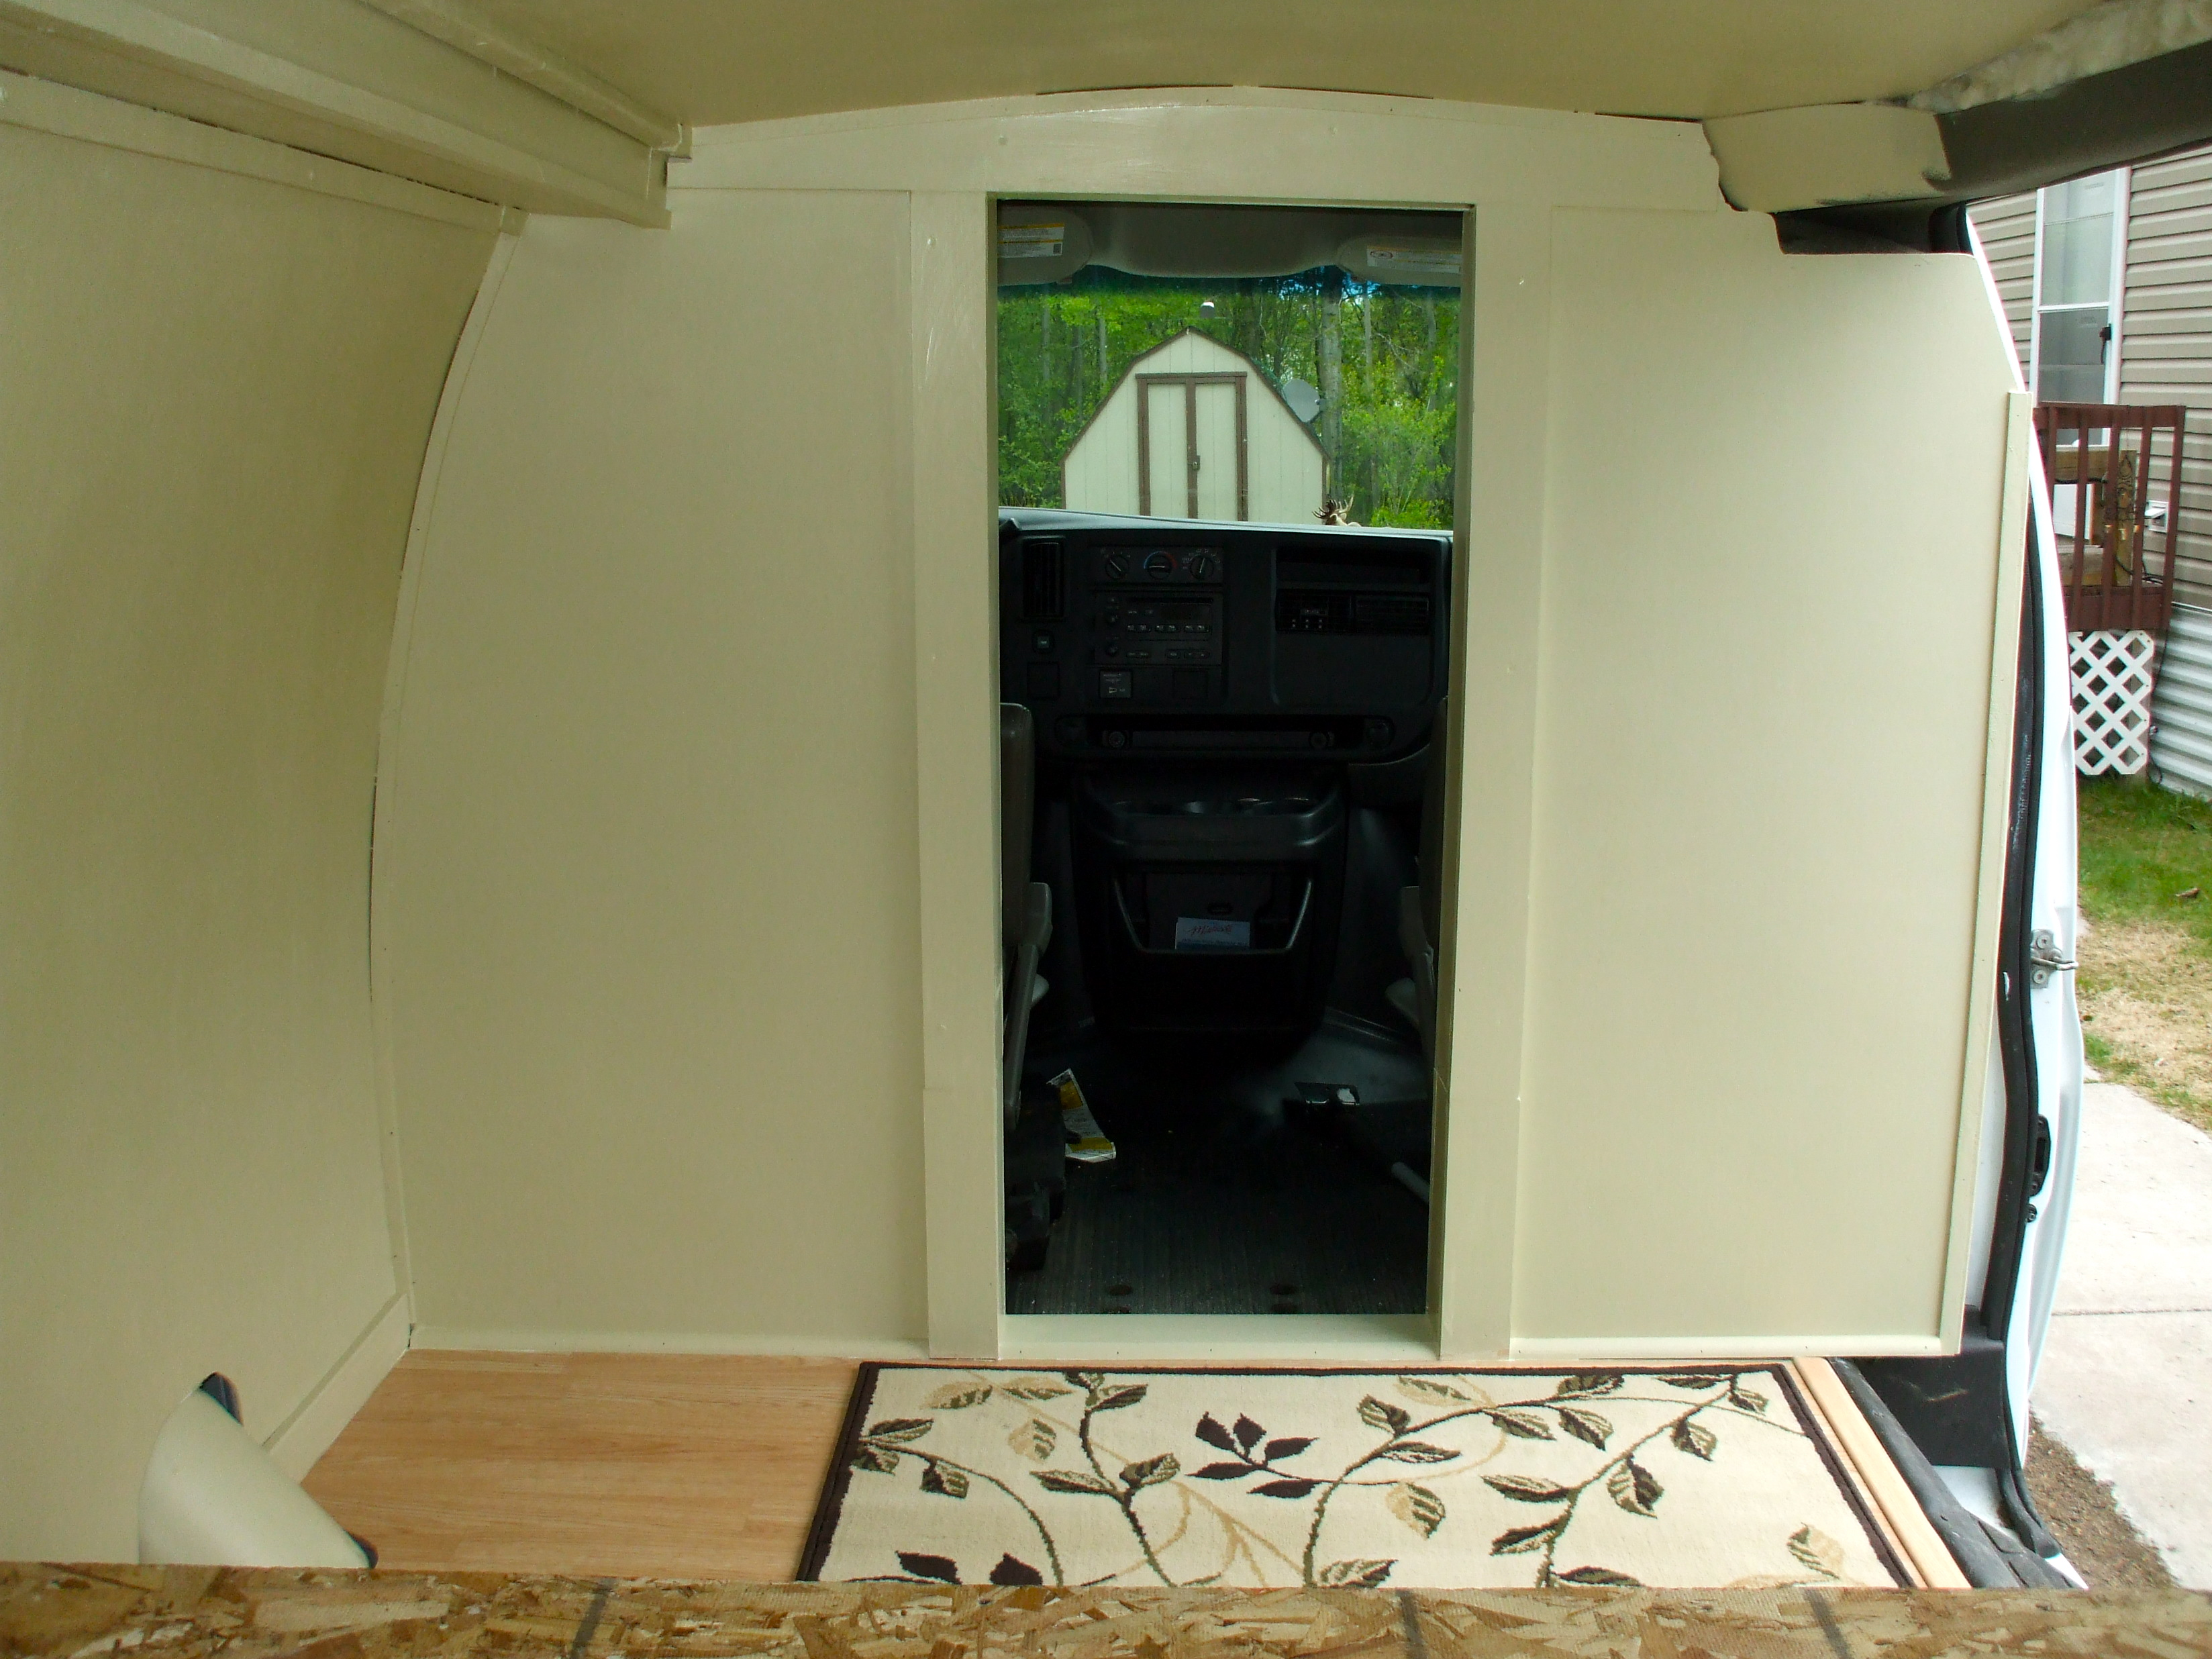 interior of van painted with flooring